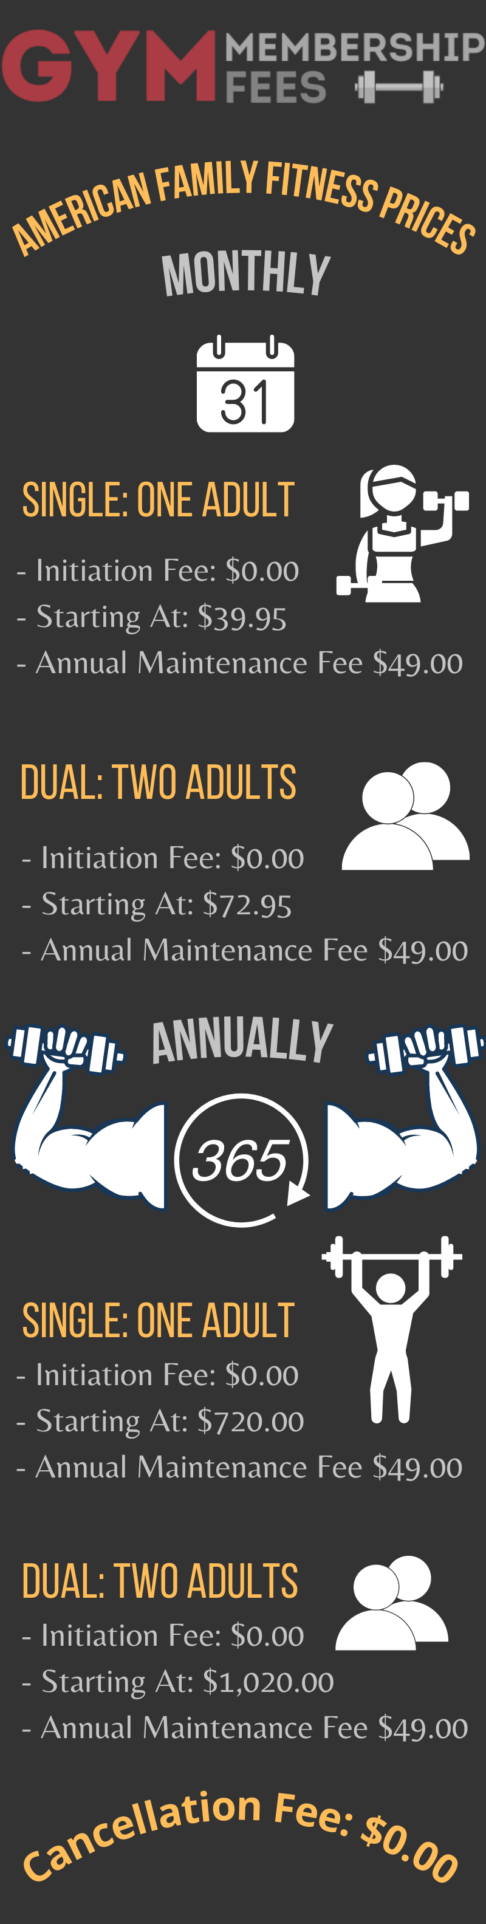 American Family Fitness Memberships